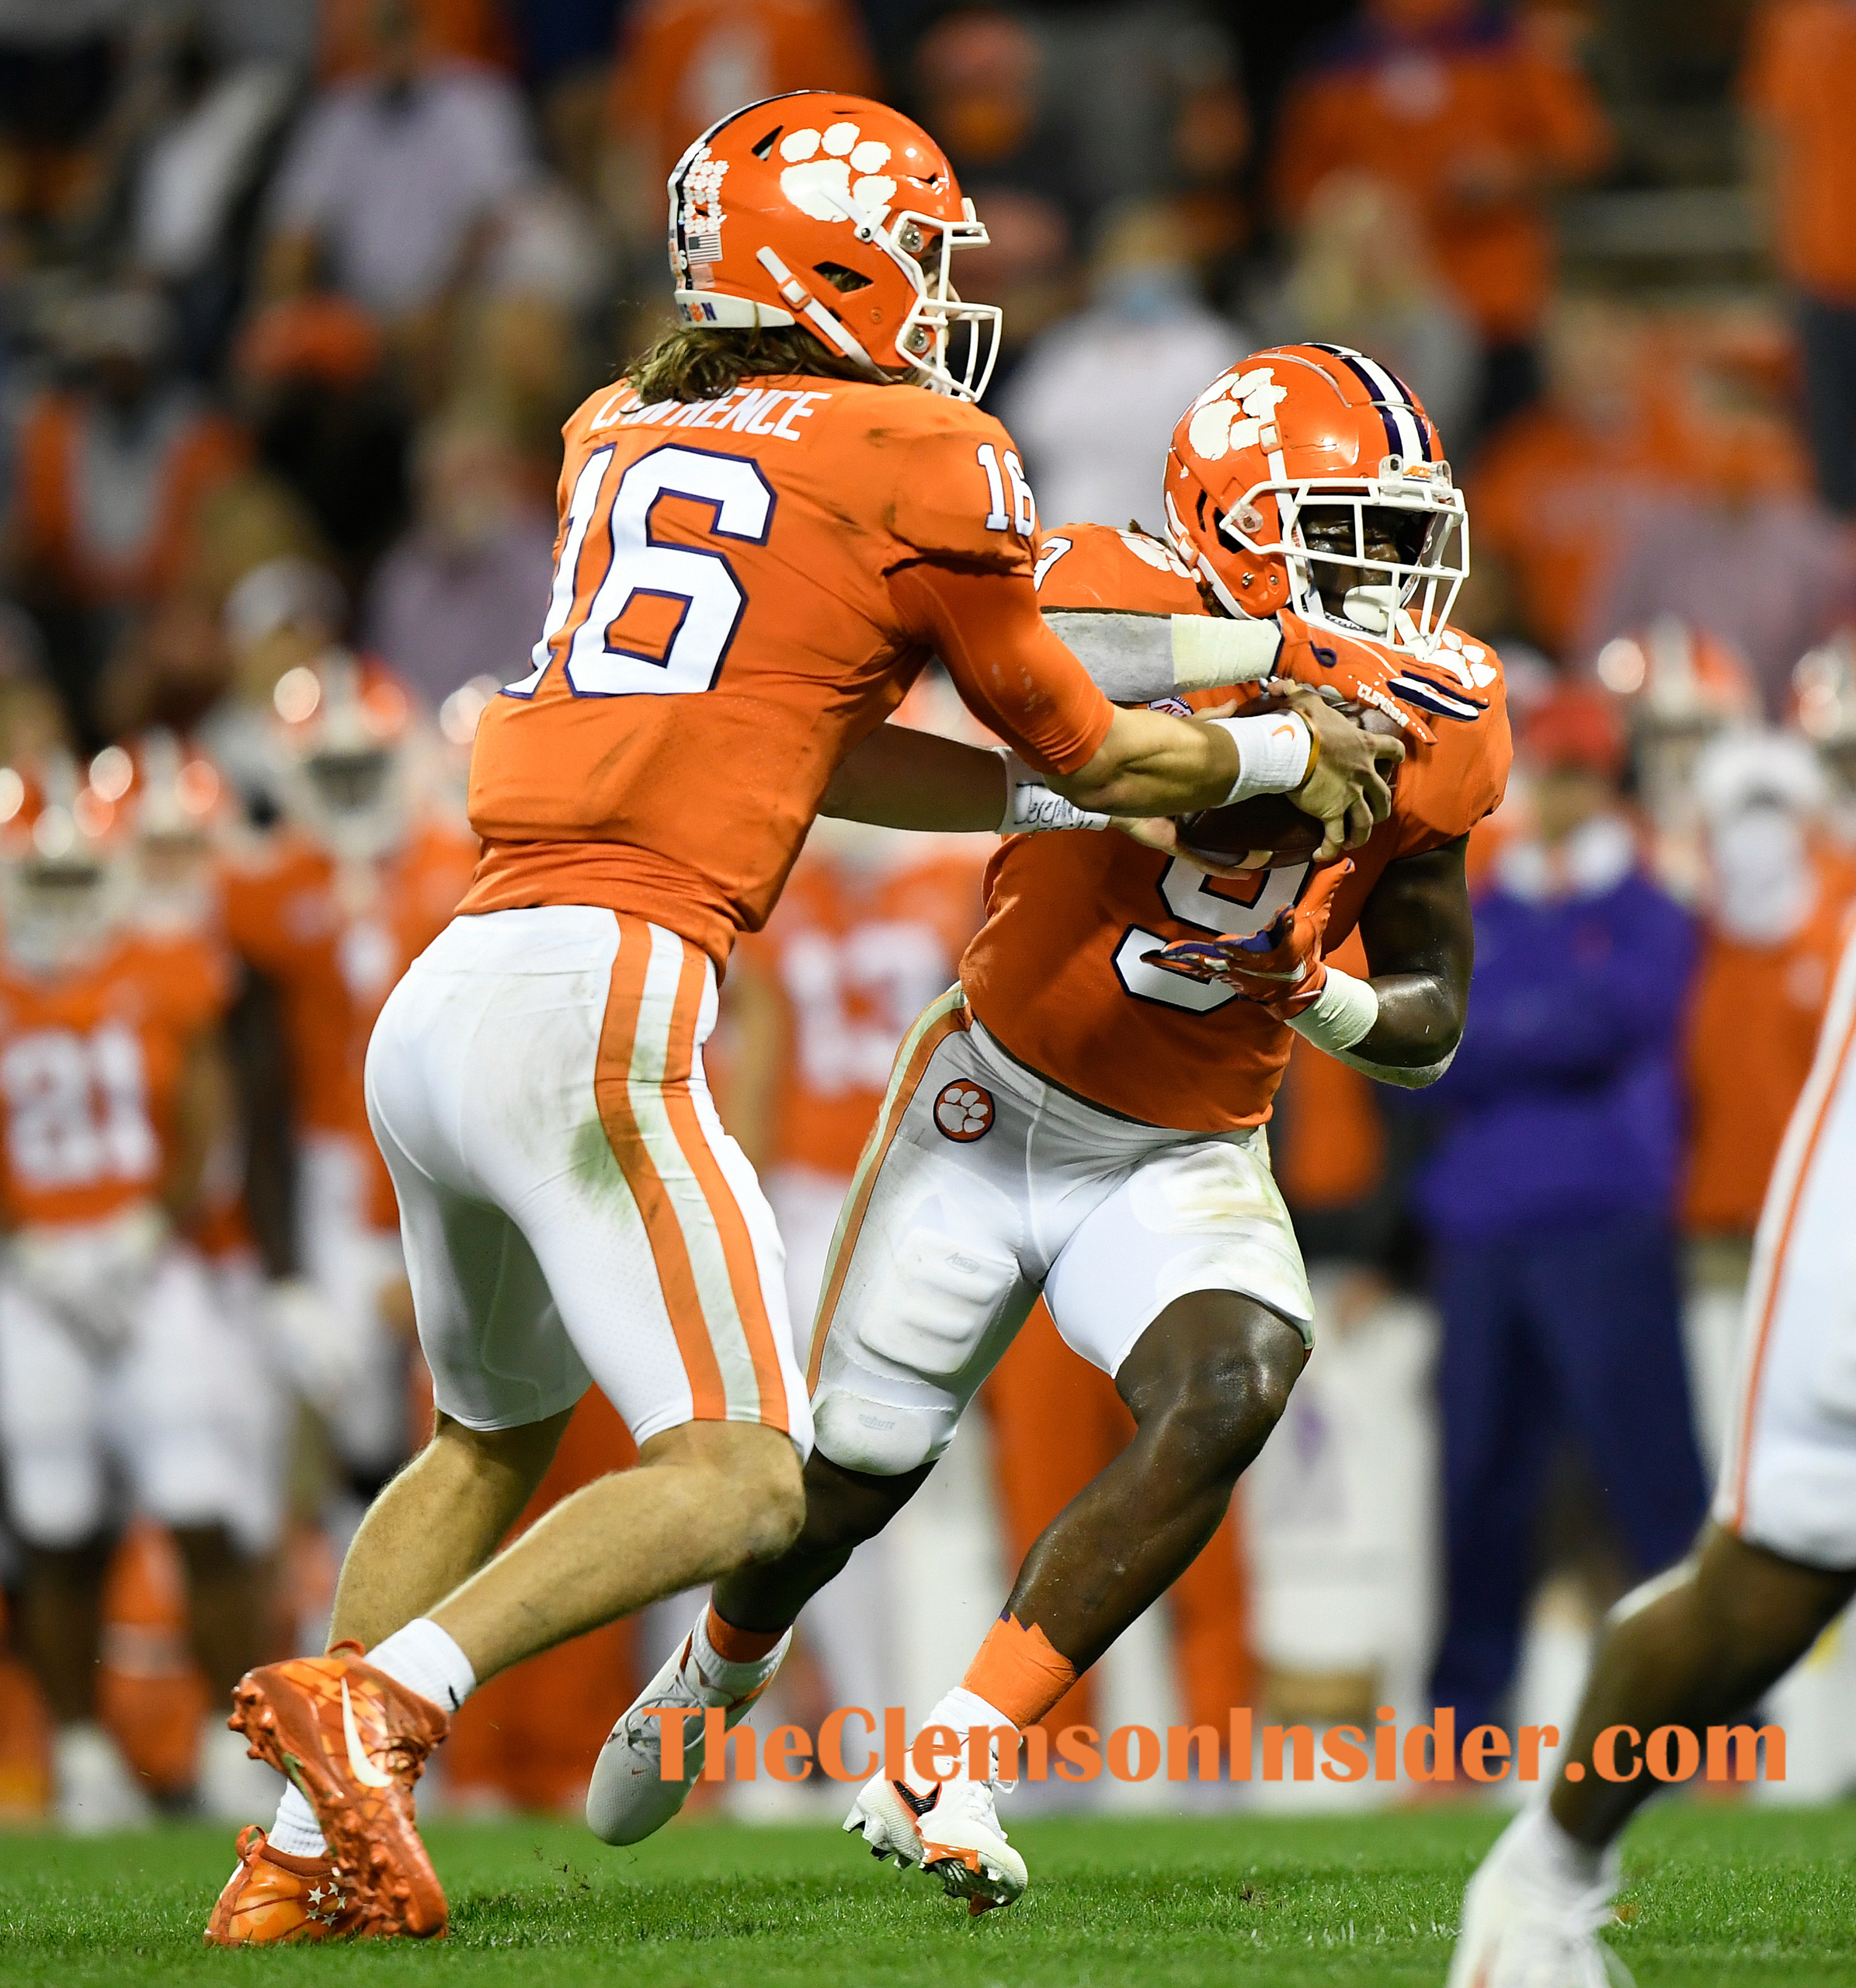 Clemson quarterback Trevor Lawrence (16) hands off to running back Travis Etienne (9) during the 2nd quarter of Clemson's game against the University of Miami at Clemson's Memorial Stadium Saturday, October 10, 2020. Bart Boatwright/The Clemson Insider